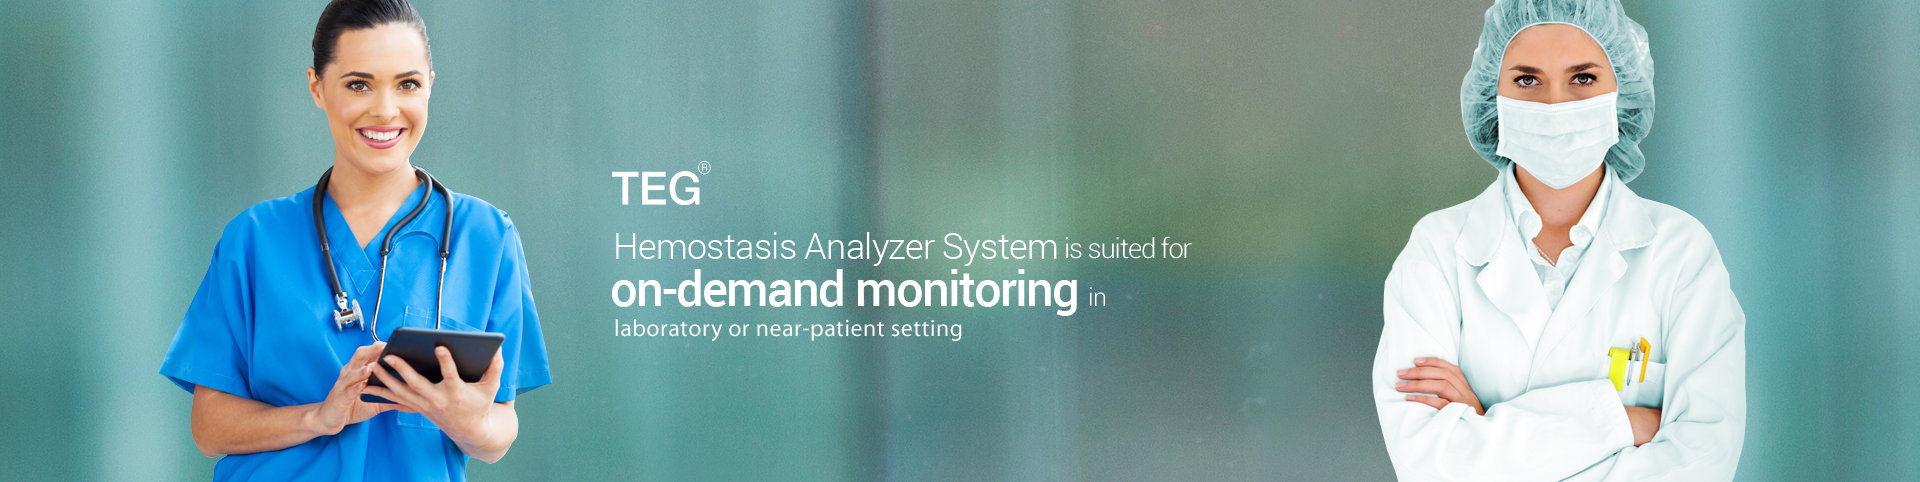 TEG 6s Hemostasis Analyzer System is suited for on-demand monitoring in laboratory or near-patient settings